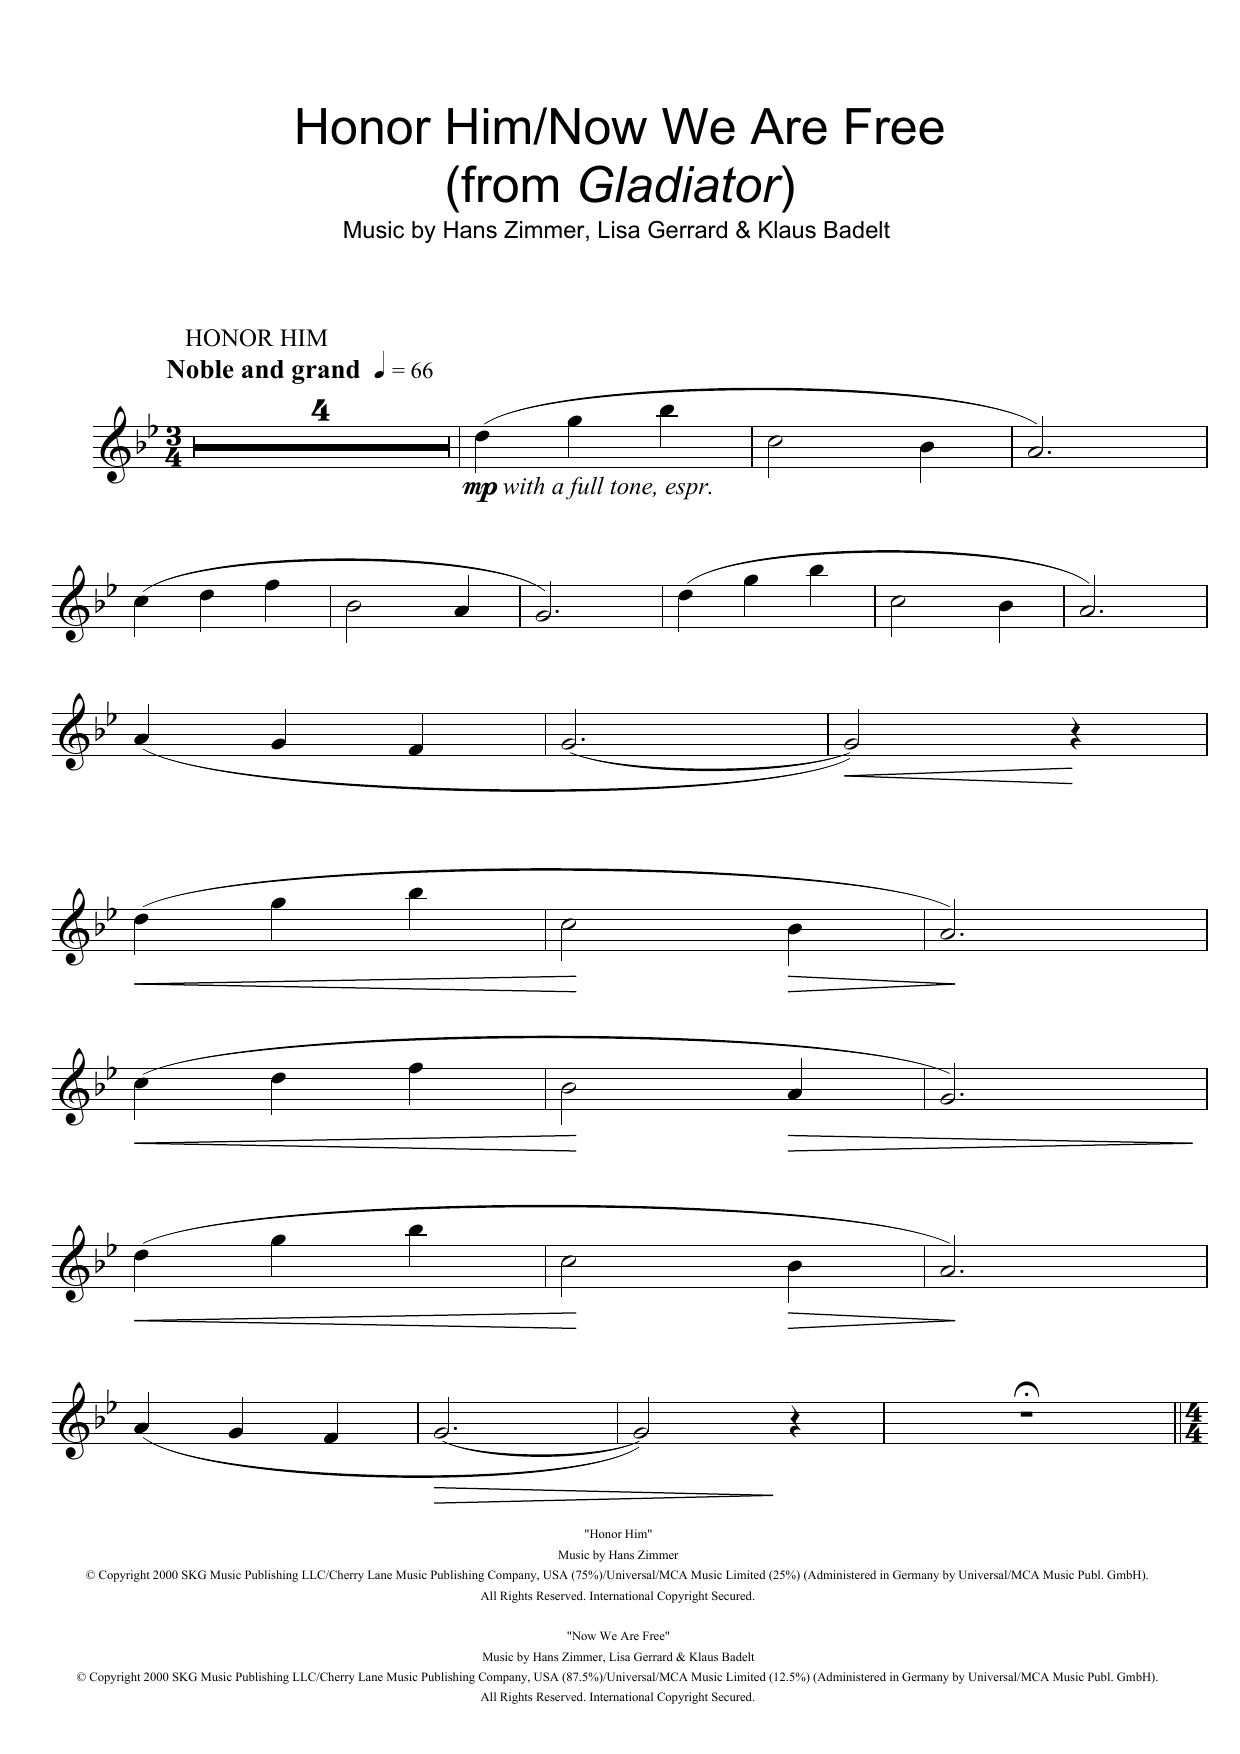 Honor Him/Now We Are Free (from Gladiator) Sheet Music